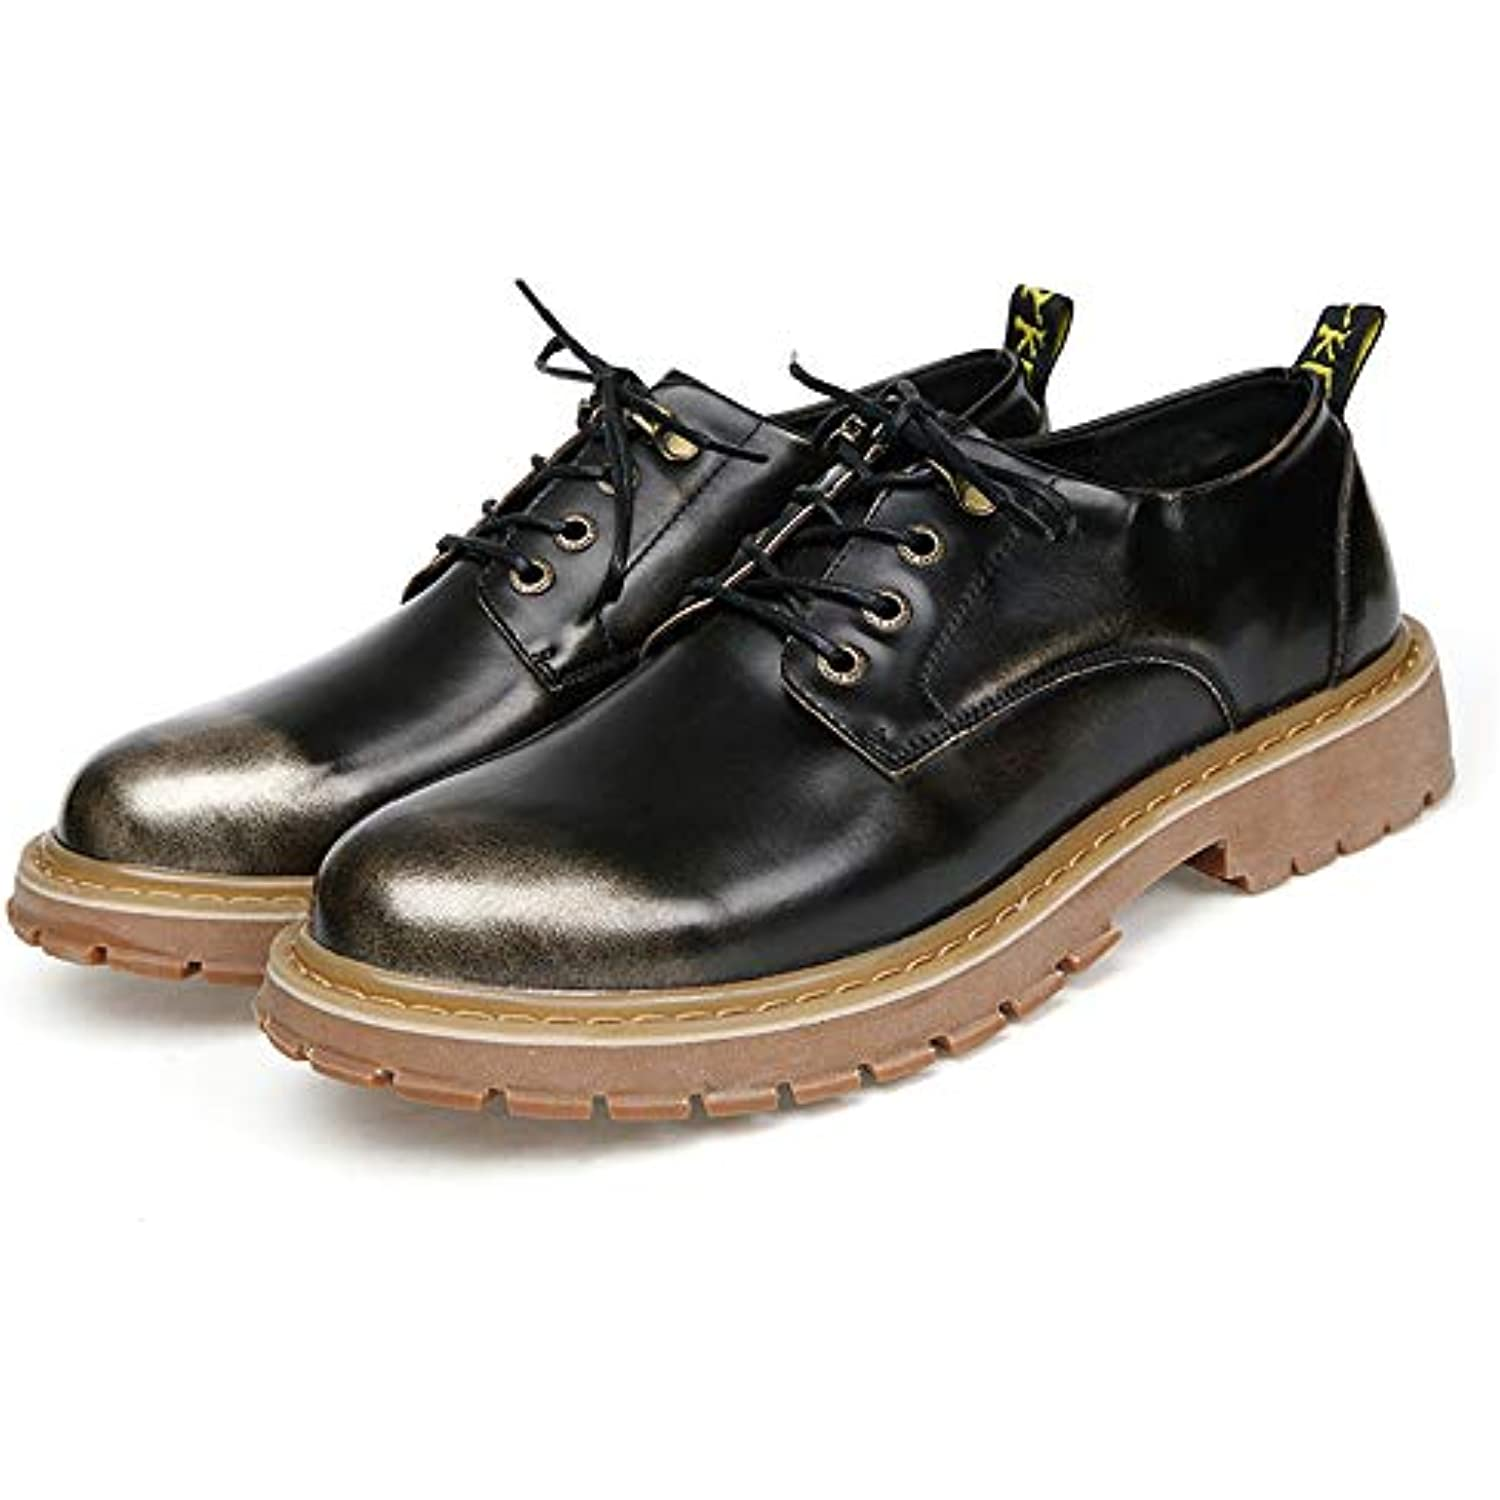 Xinguang Hommes Rétro Ying British Casual Oxford Classique O6Hqd6xZw